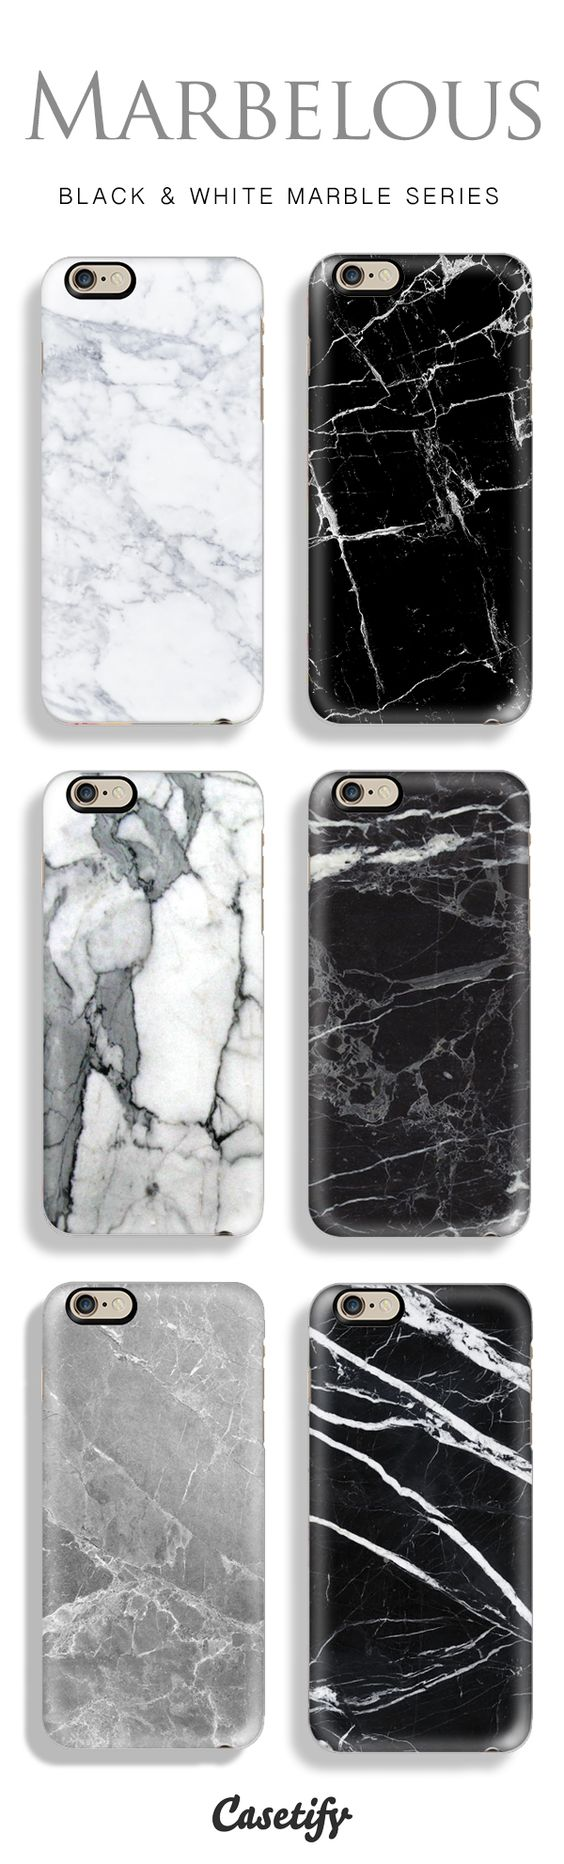 Top 6 marble iPhone 6 protective phone cases   Click through to see more black and white marble iphone phone case ideas >>> http://www.casetify.com/marble-iphone-case   @casetify